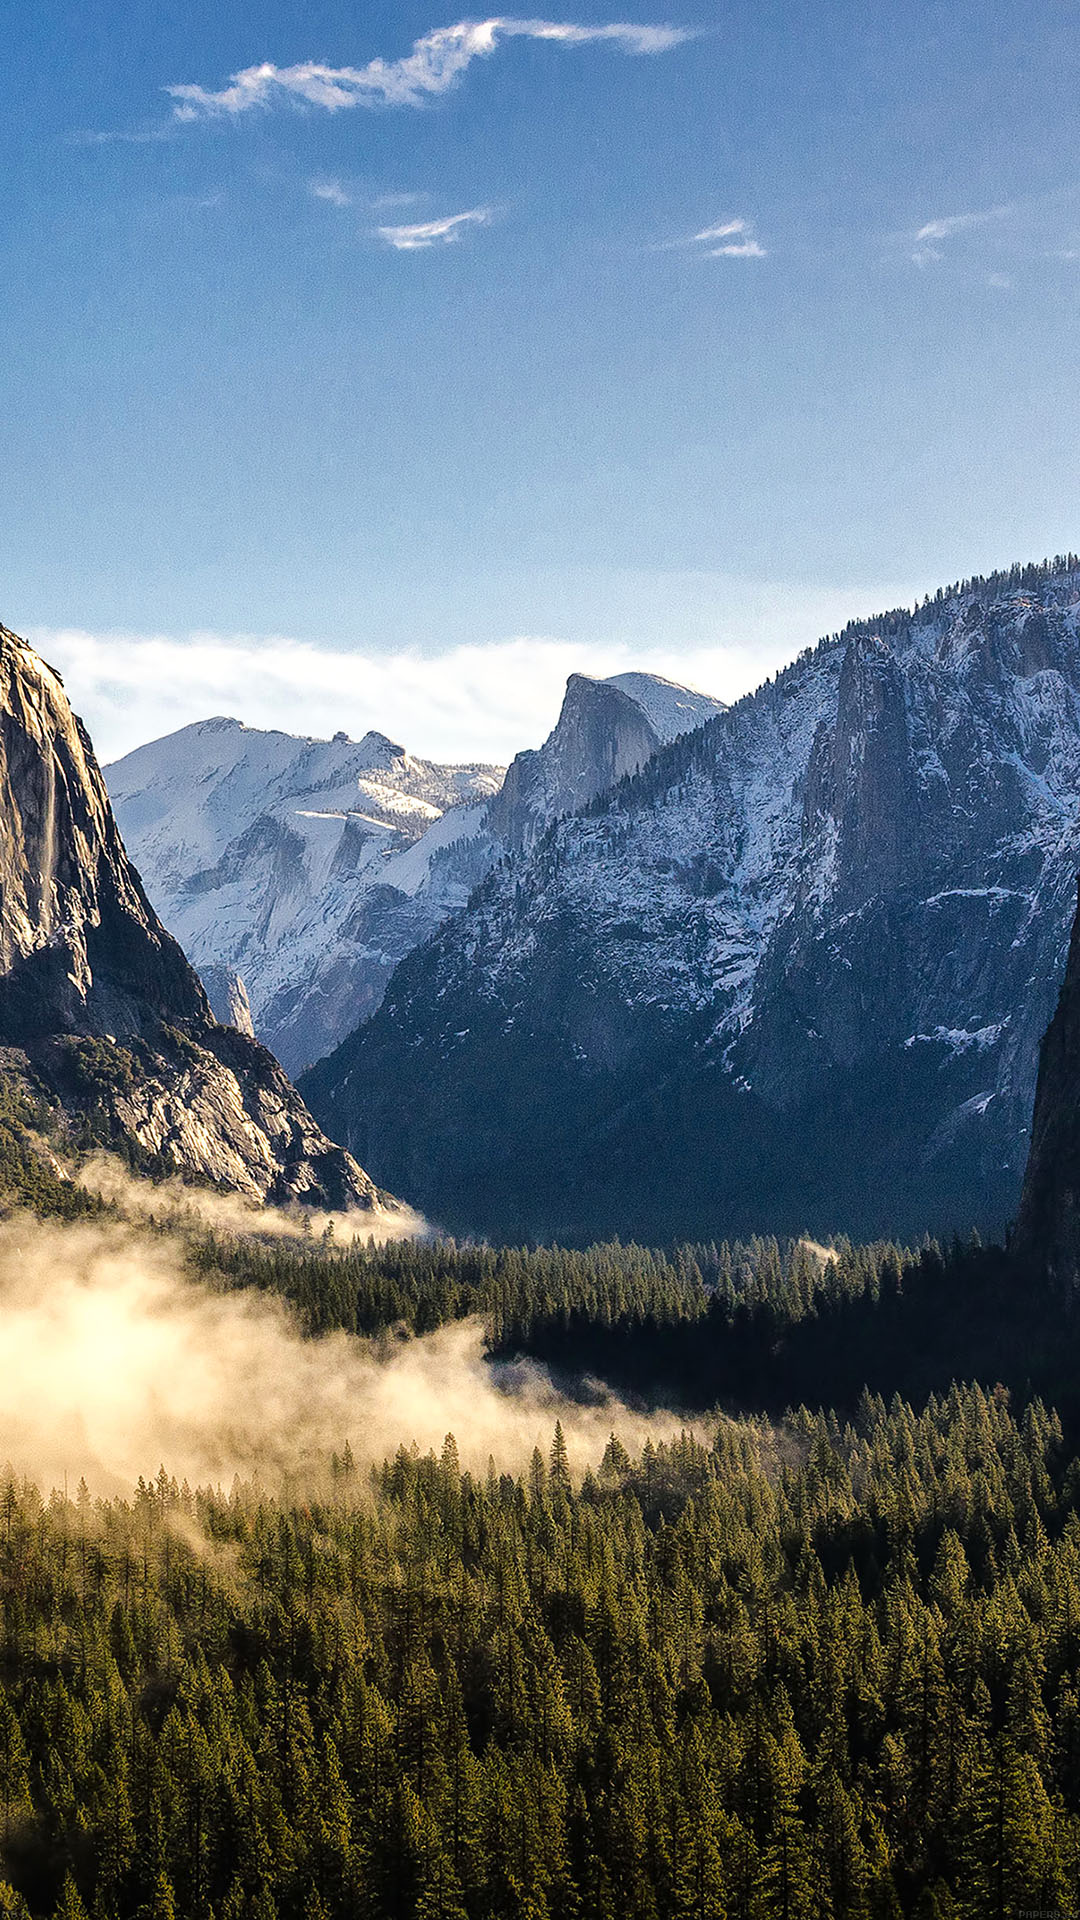 California Wallpaper Iphone X Yosemite National Park Wallpapers For Iphone And Ipad